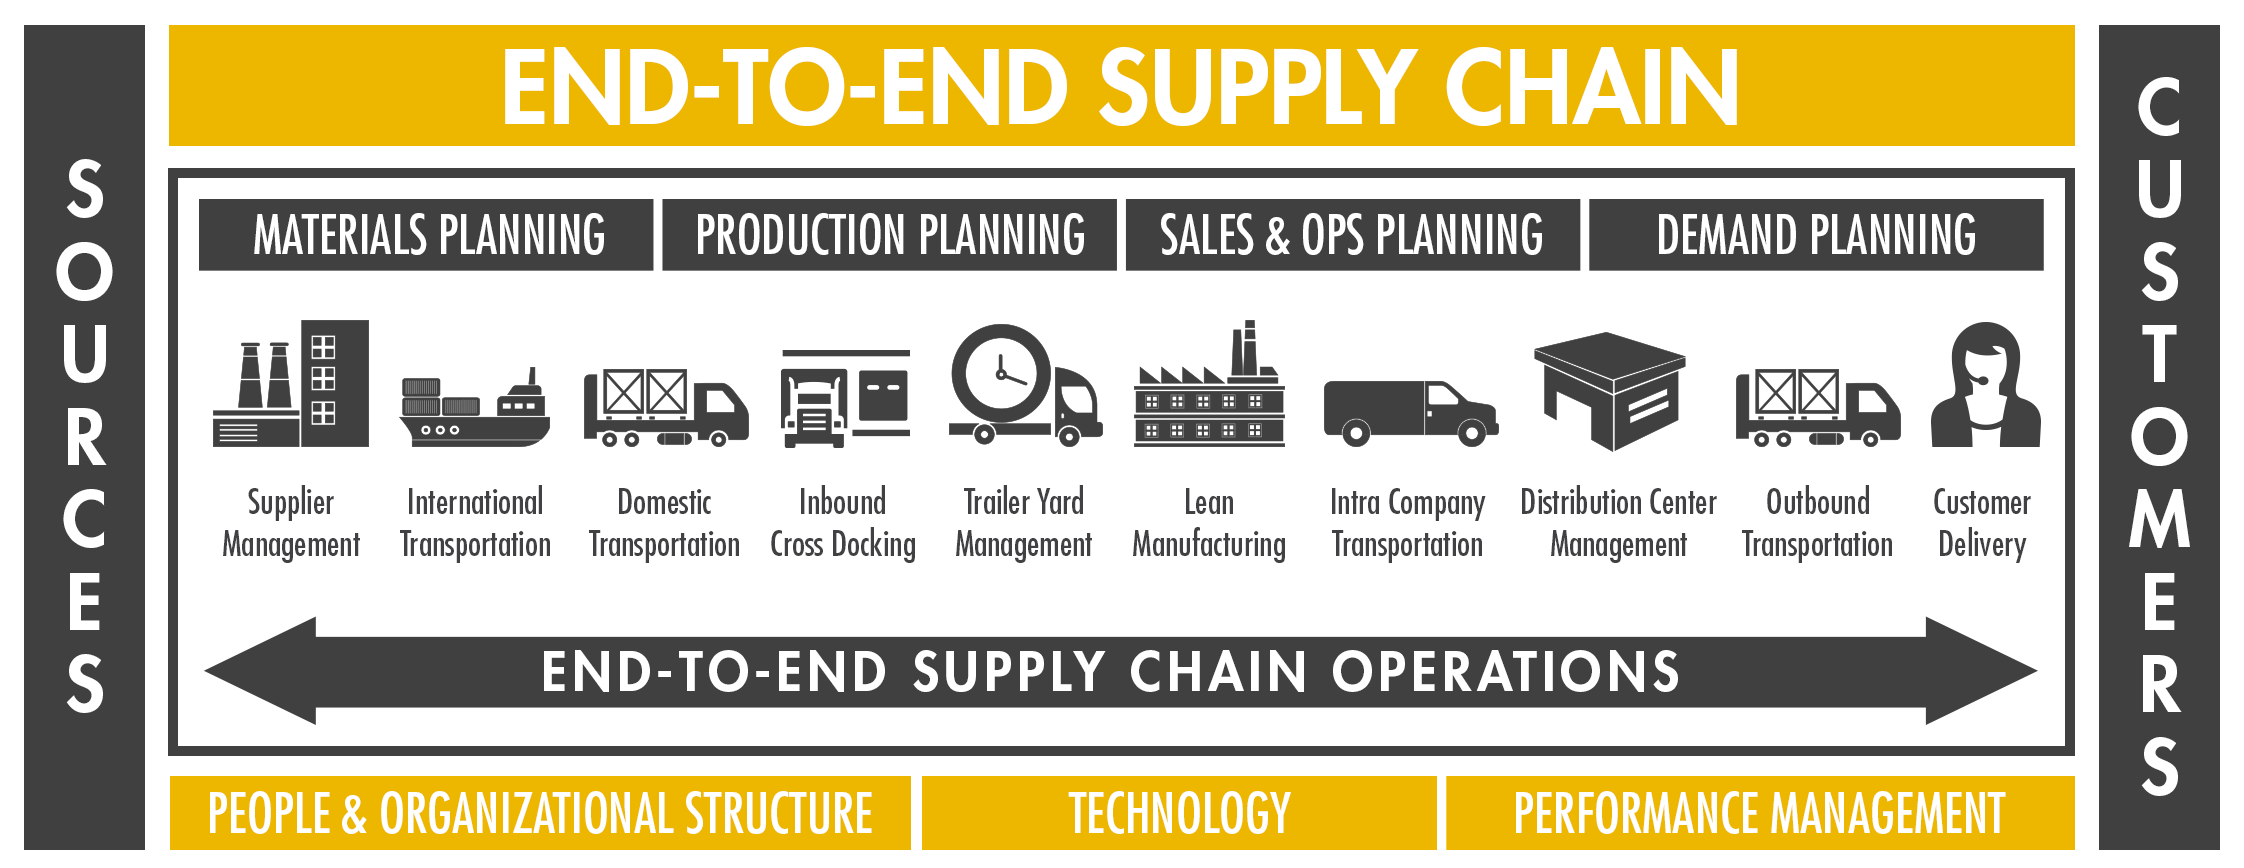 End-to-End_Supply_Chain_DAN-5.png